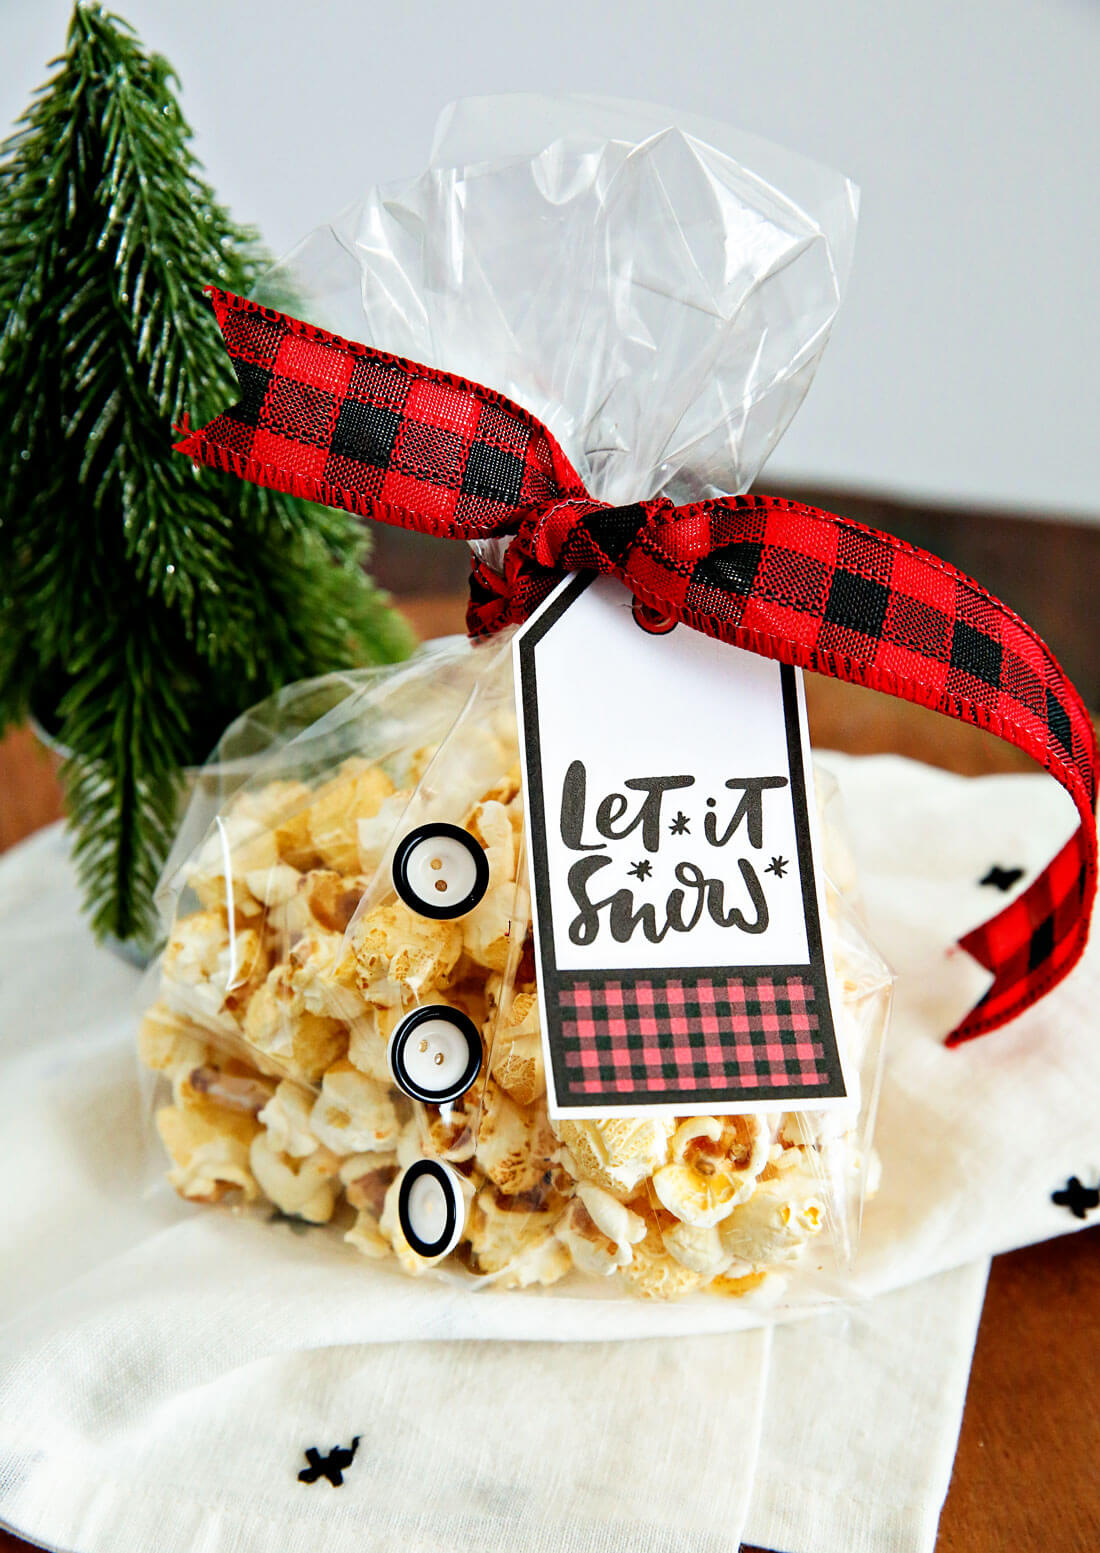 Holiday Kettle Corn Snack Mix - make this treat for friends and neighbors for Christmas! With cute printable from www.thirtyhandmadedays.com